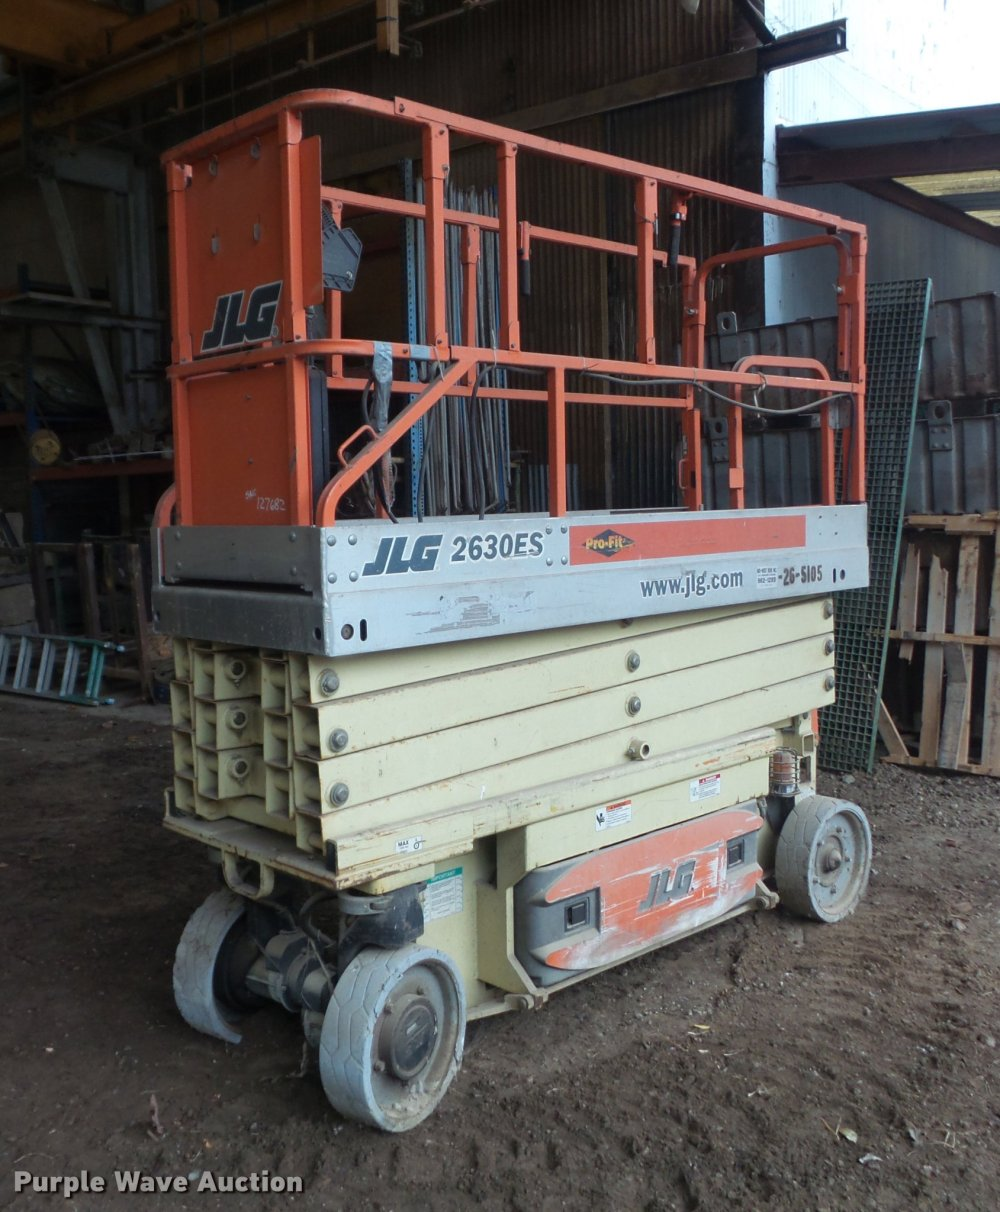 medium resolution of db6384 image for item db6384 2005 jlg 2630es scissor lift